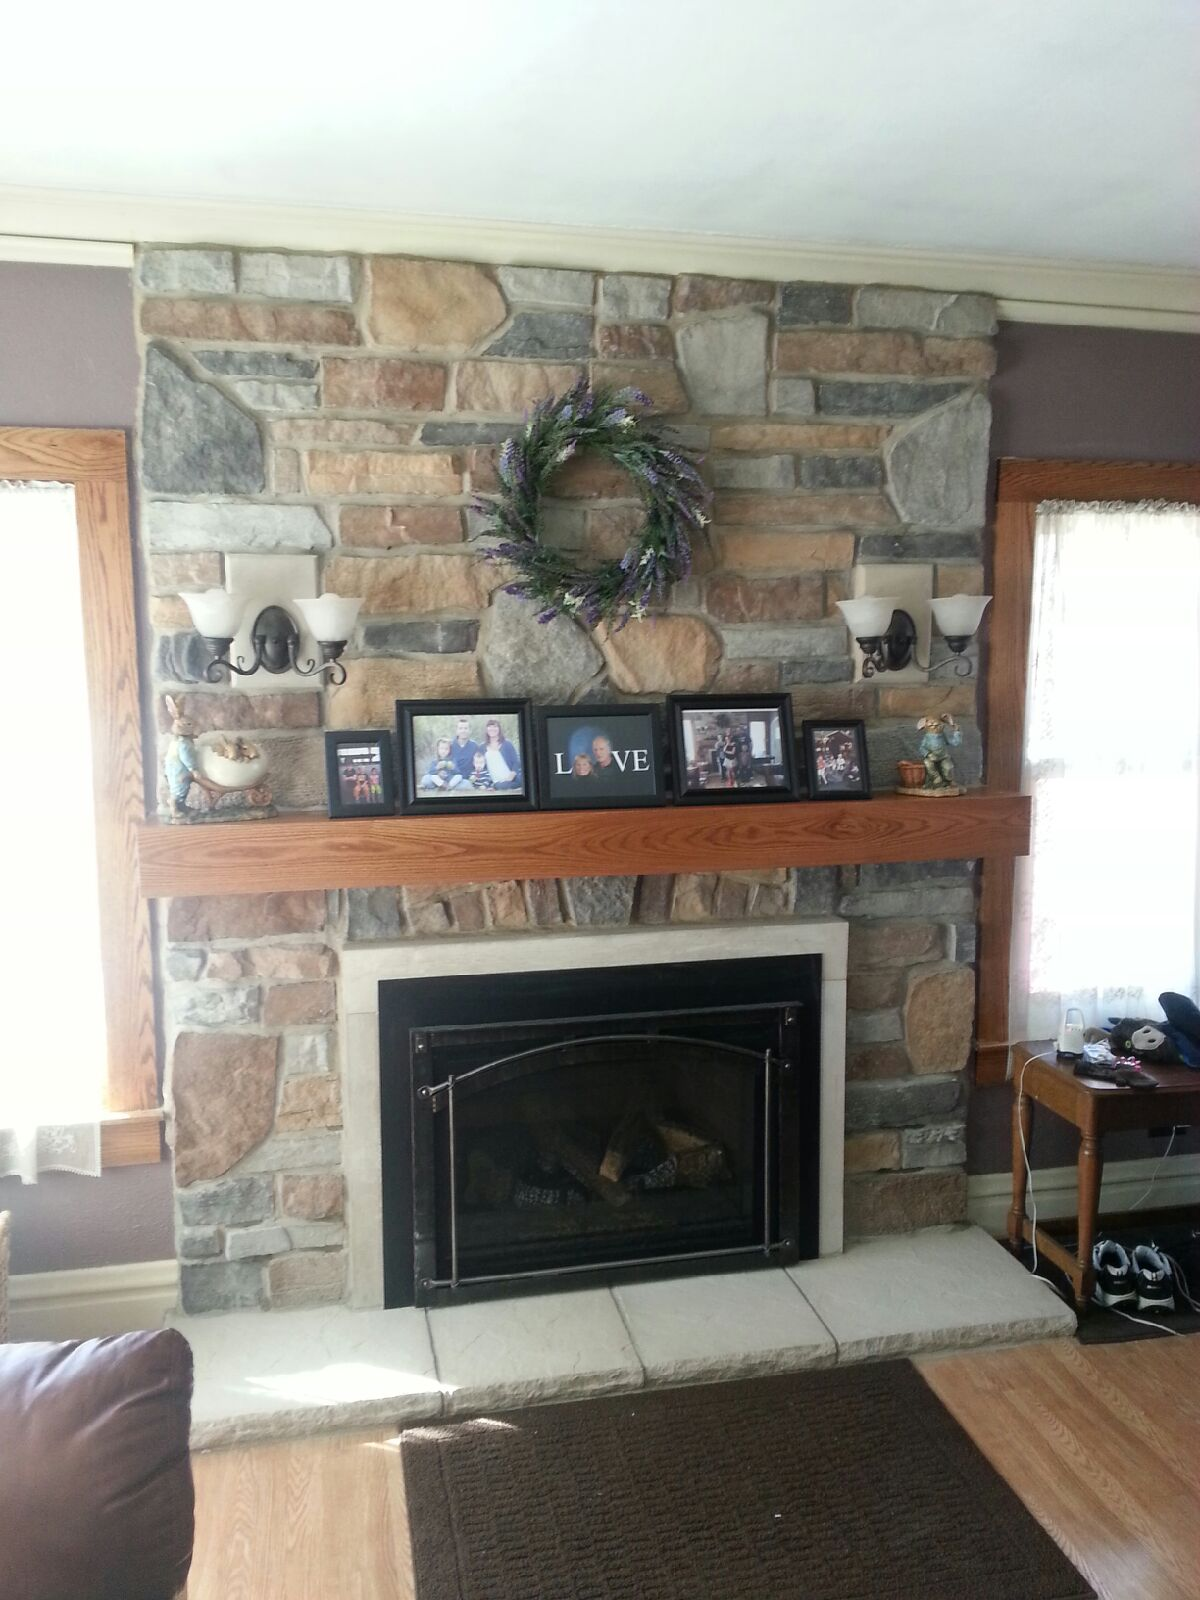 Escape Insert w/ Stone Work, Mantel and Lighting